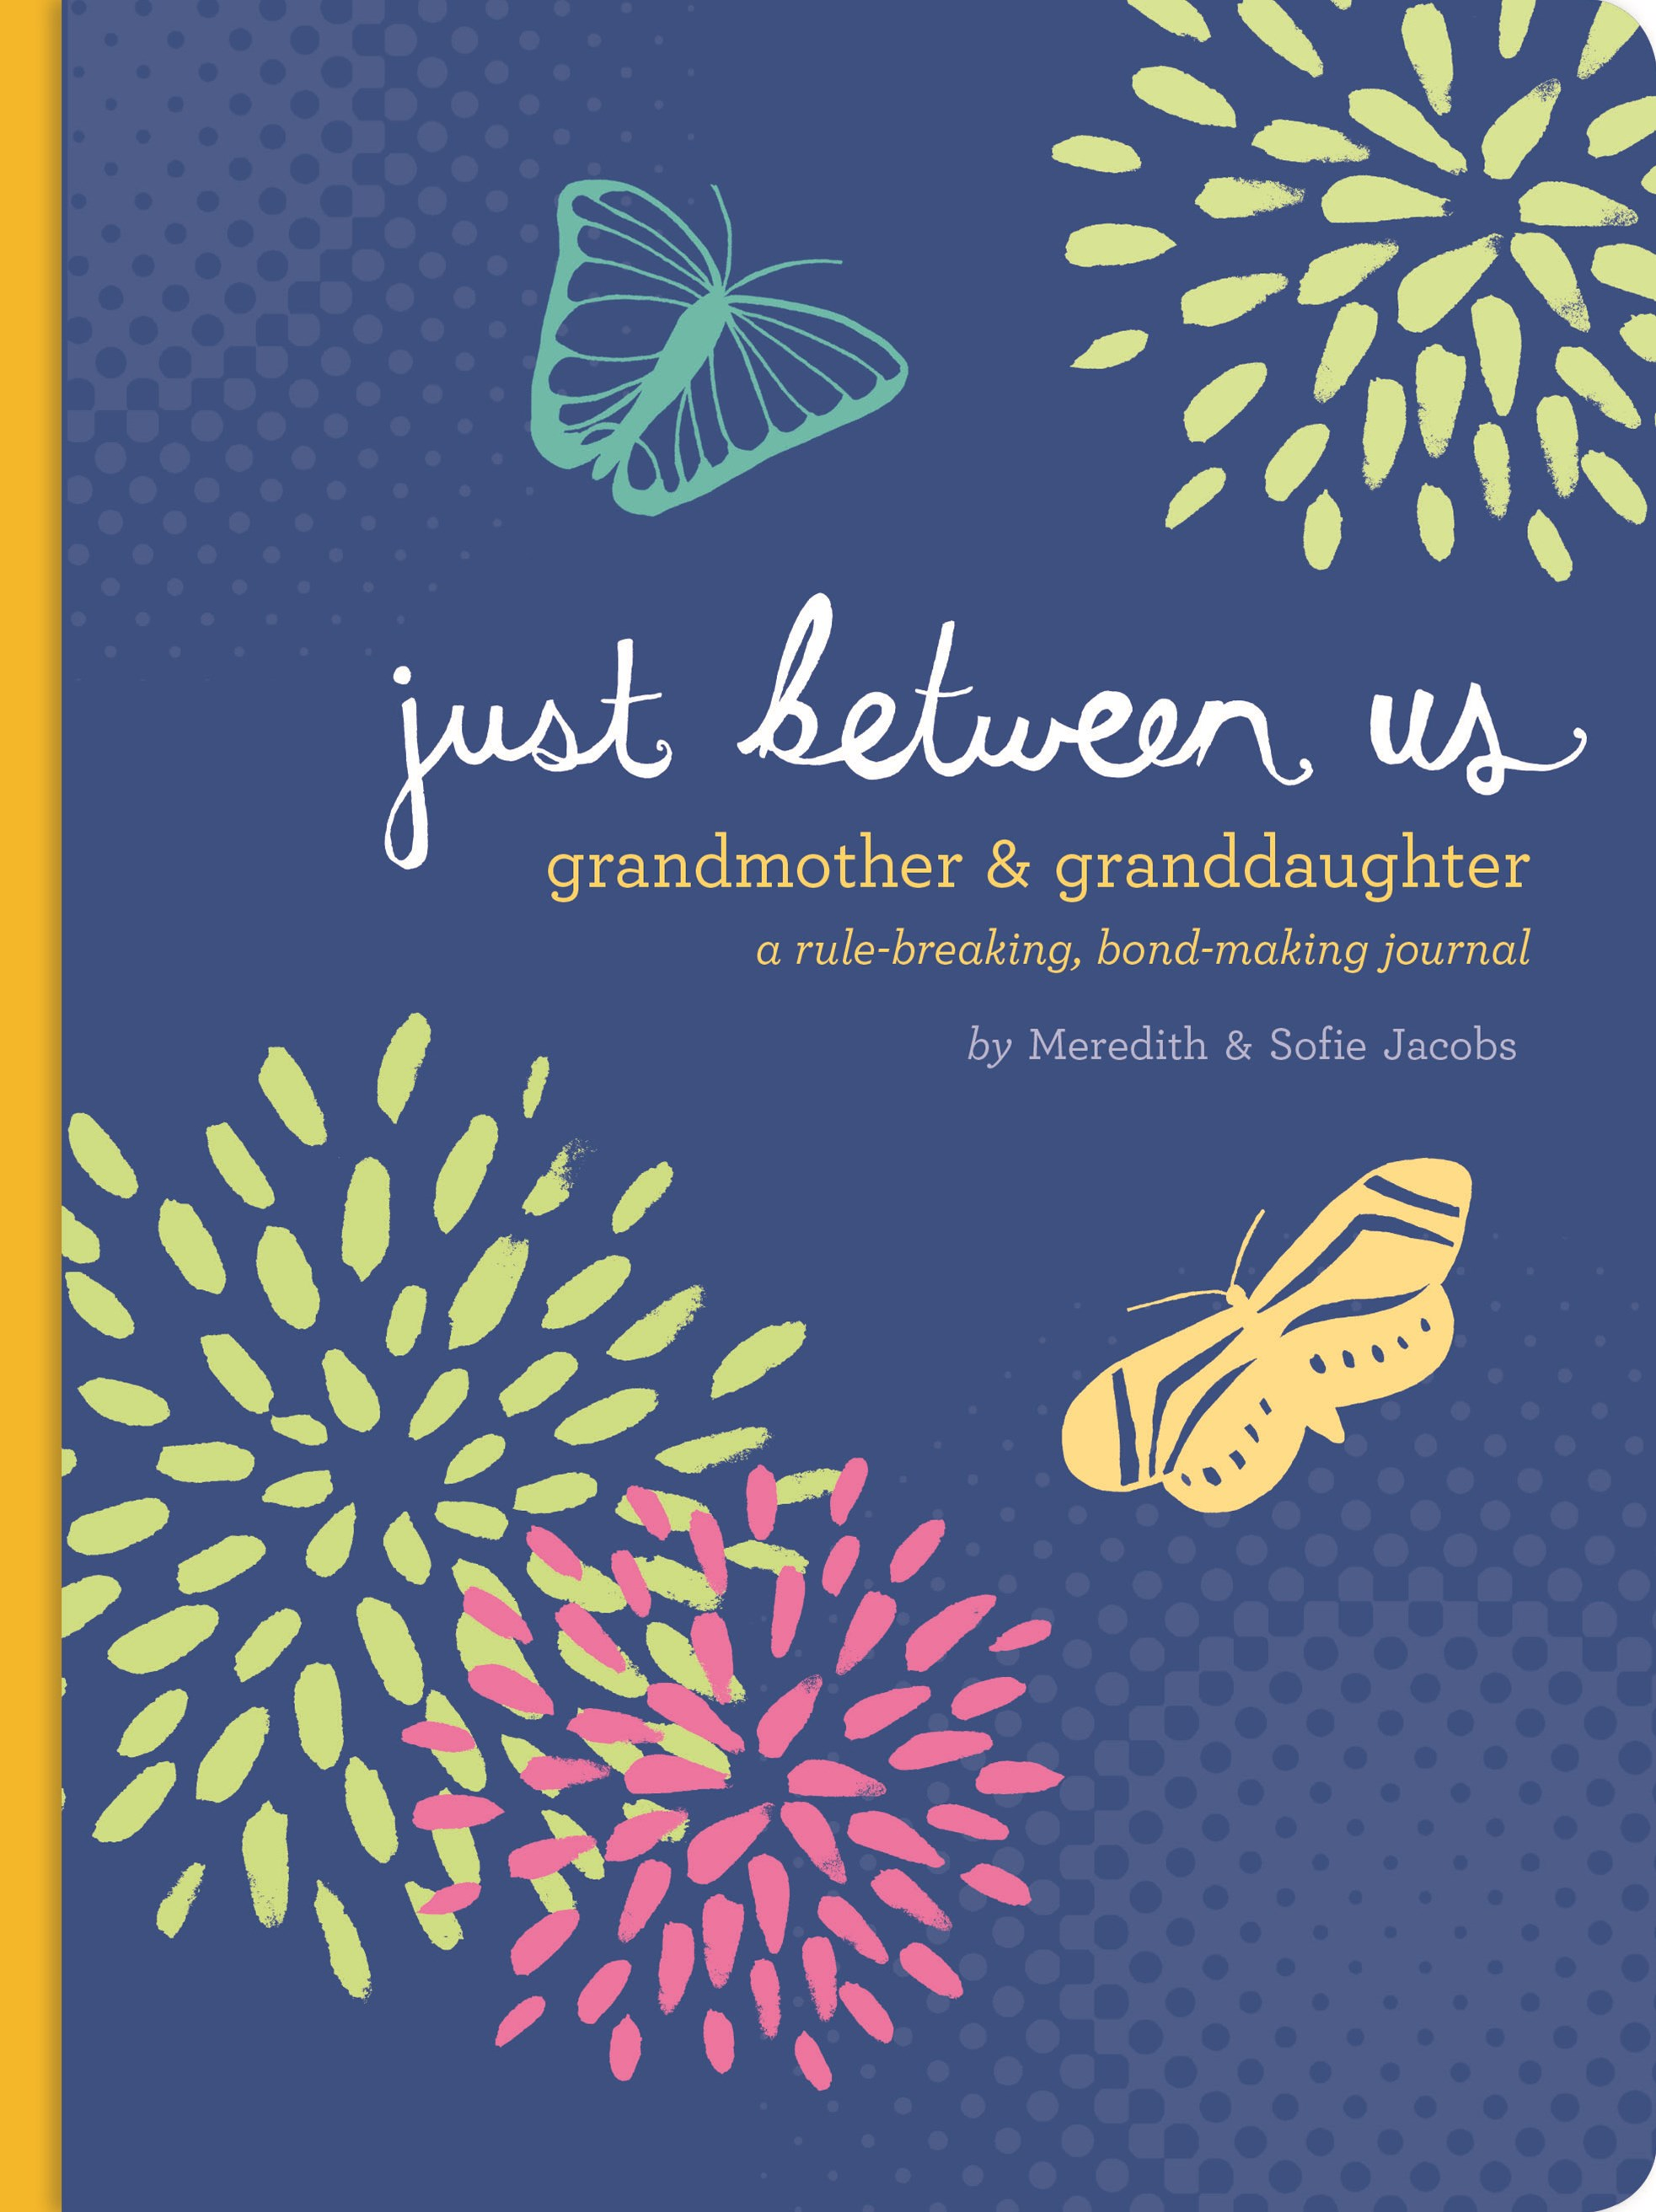 Just Between Us: Grandmother & Granddaughter